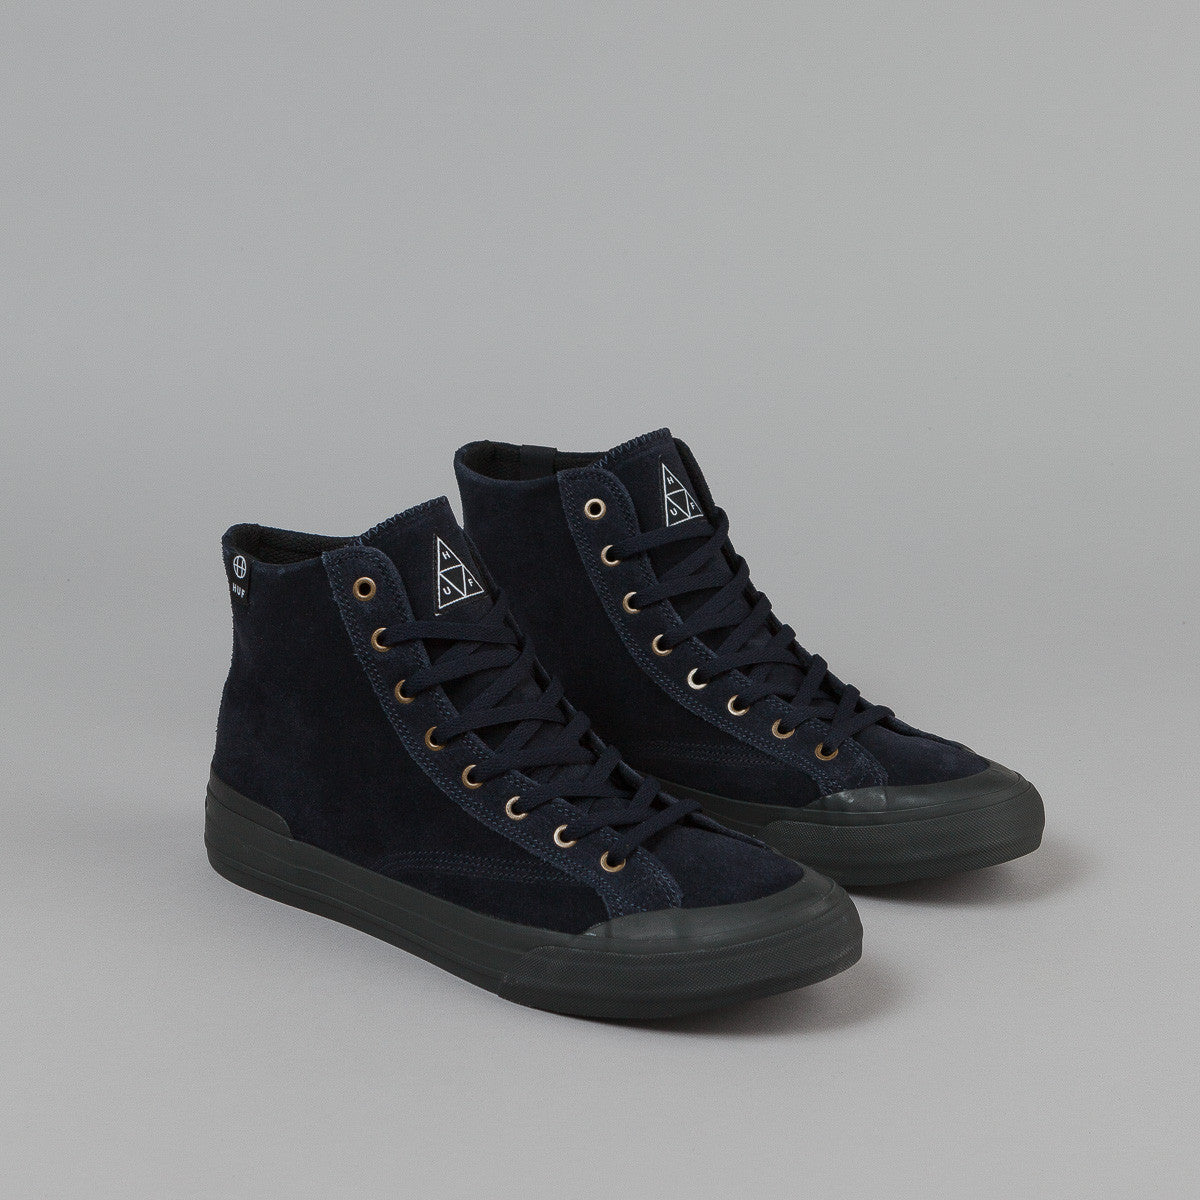 HUF Classic Hi Shoes - Dark Navy / Black